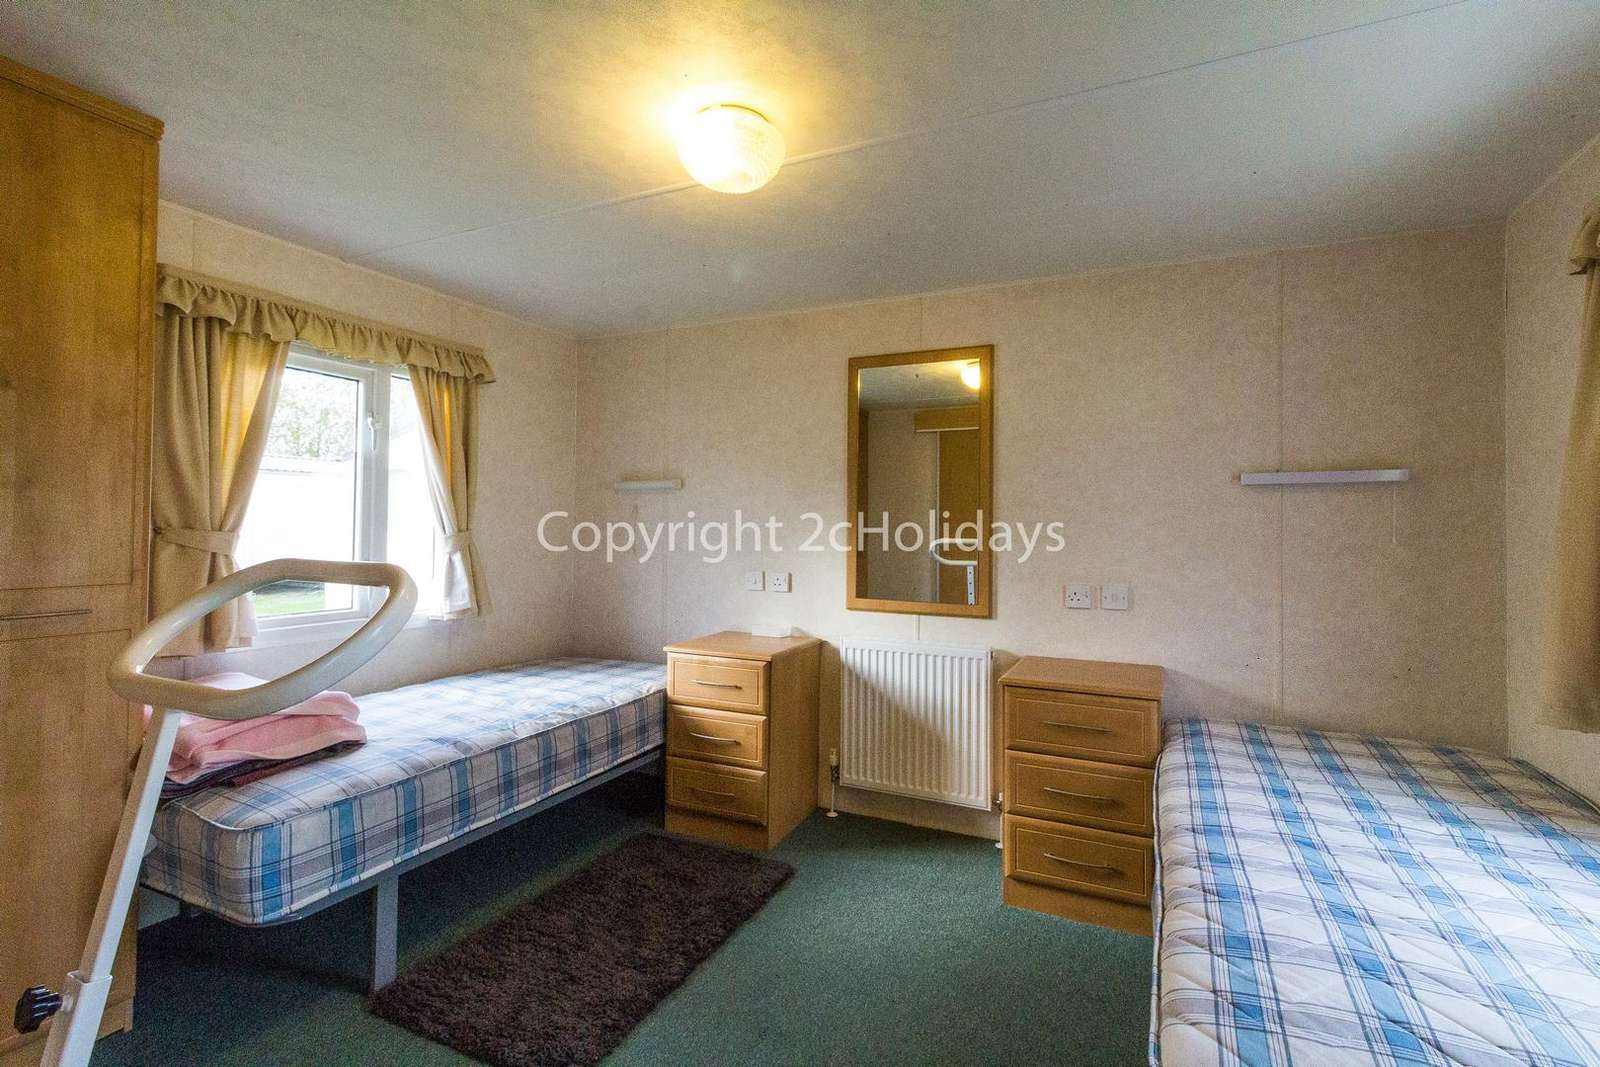 Very spacious twin bedroom with two single beds